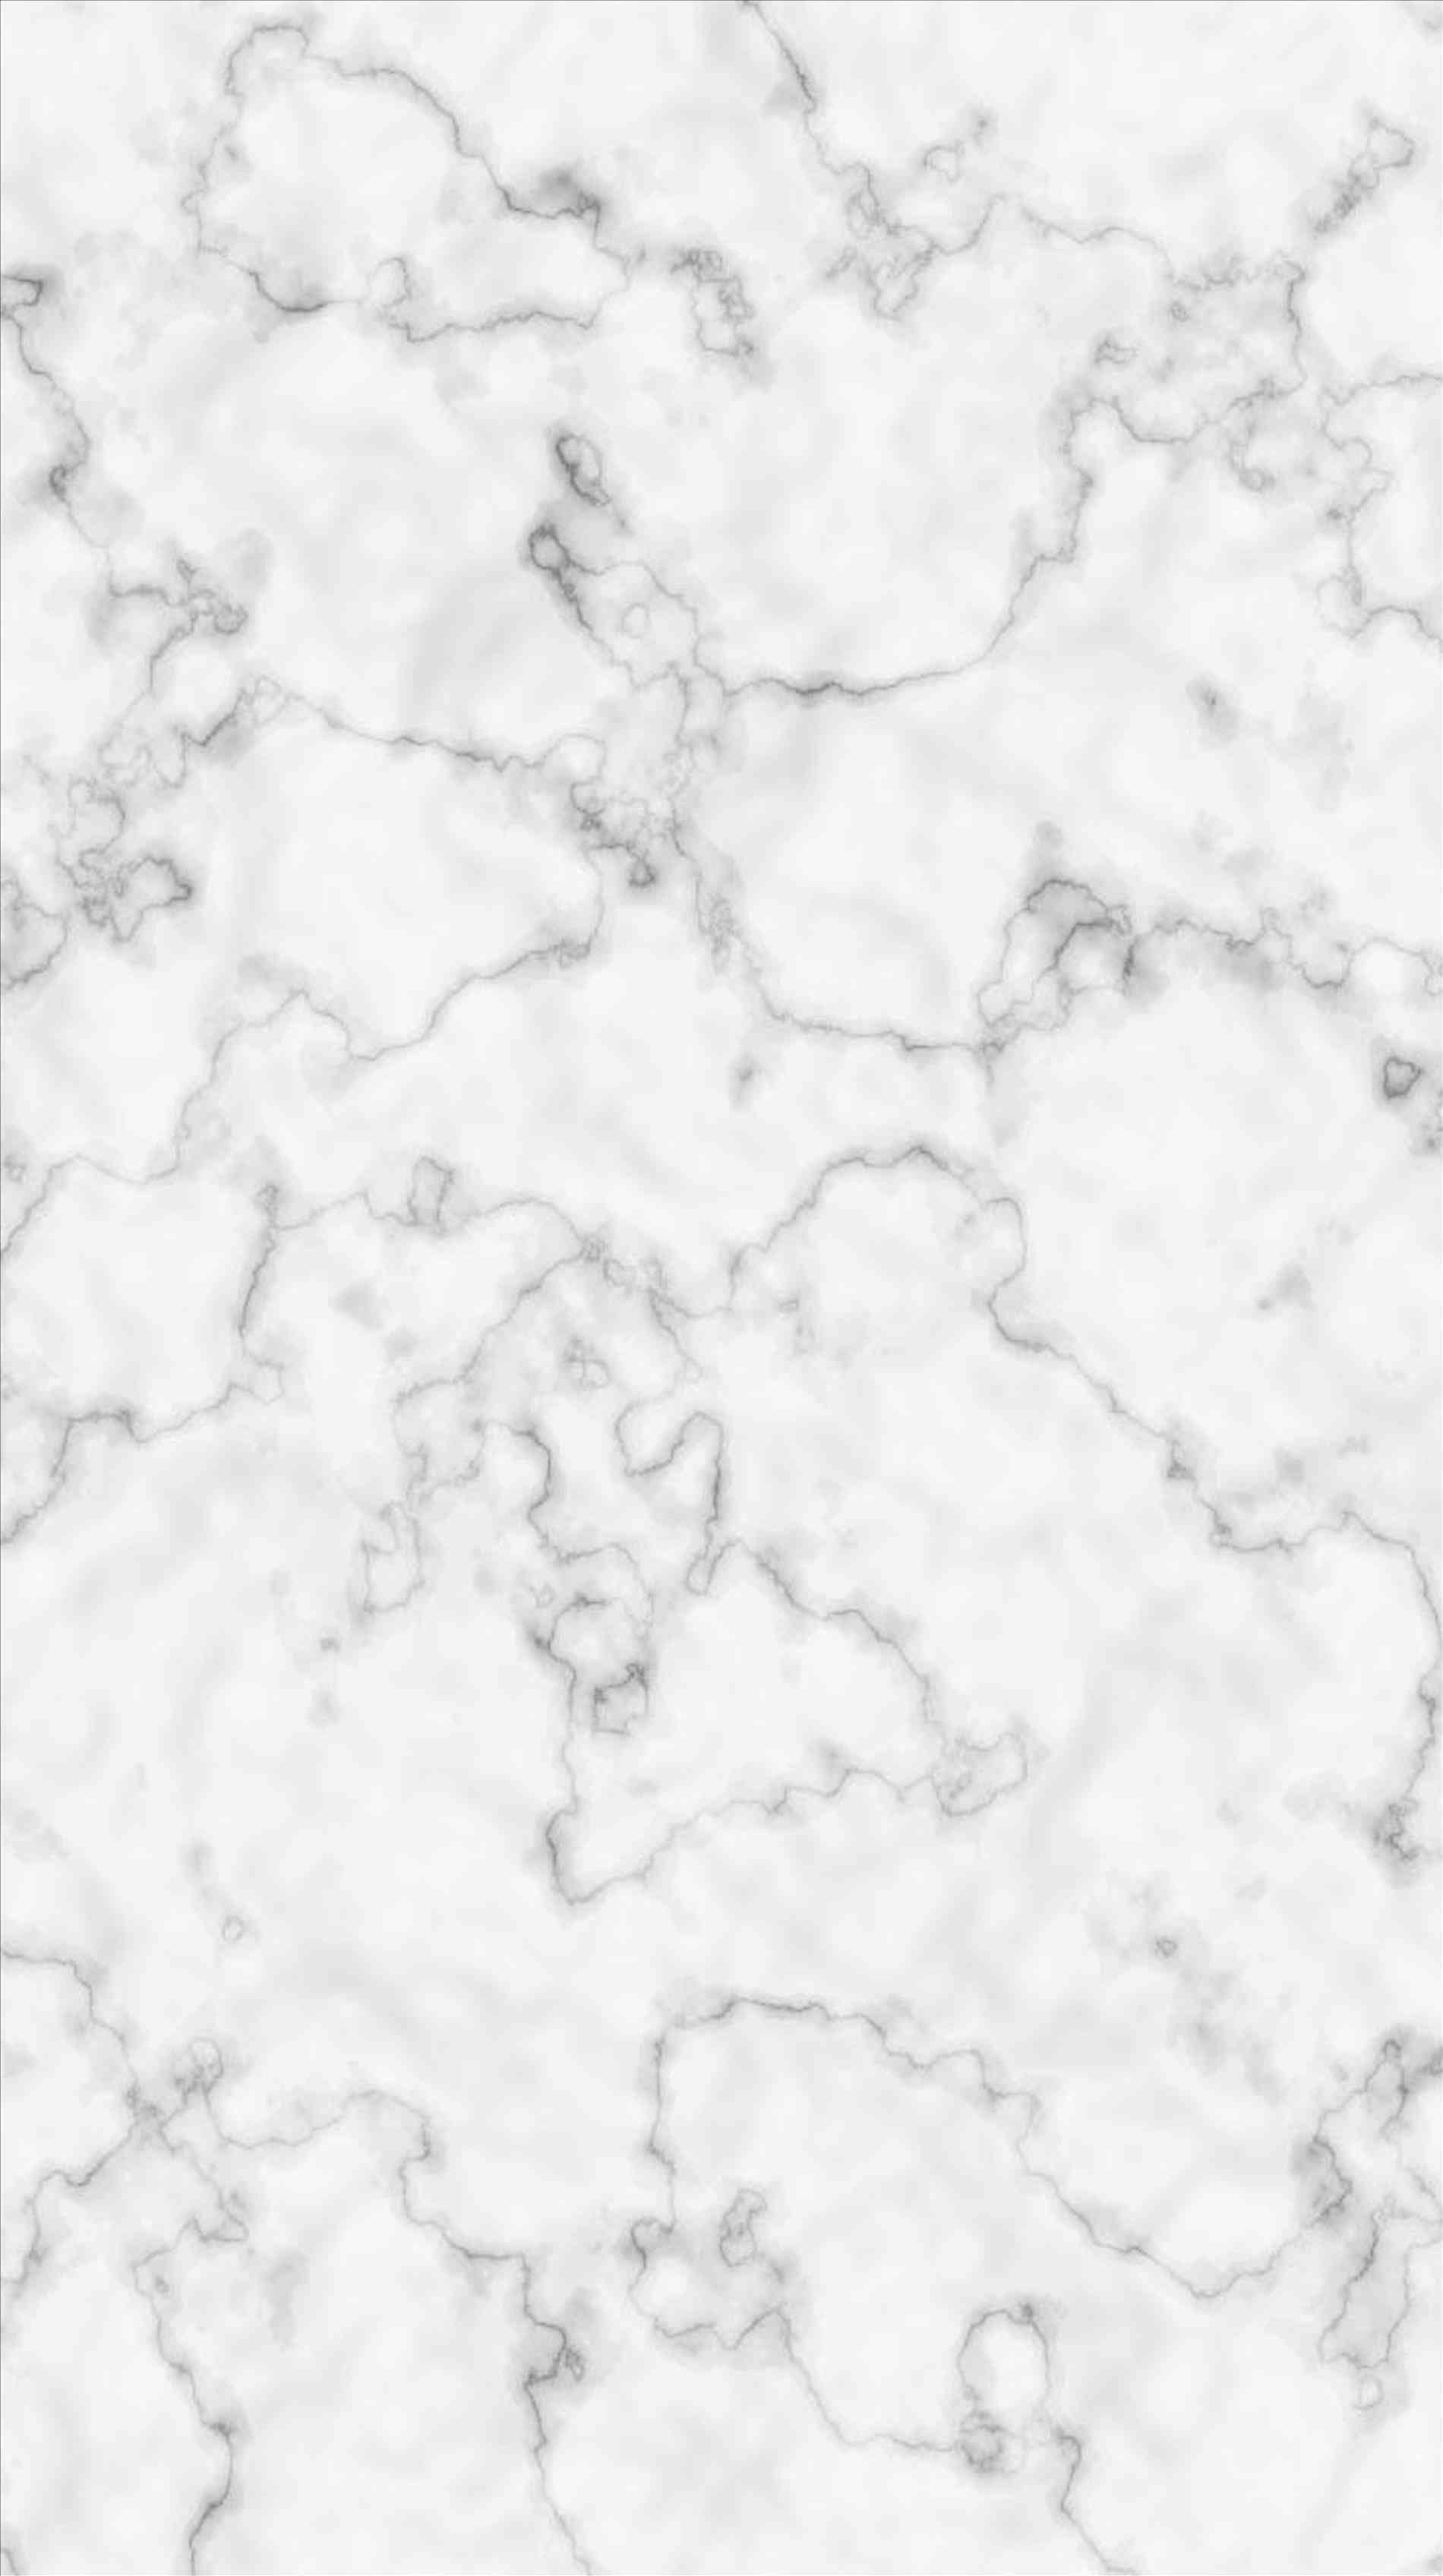 Pin By Axelle Grm On Textures Marble Iphone Wallpaper Marble Wallpaper Phone Marble Background Iphone